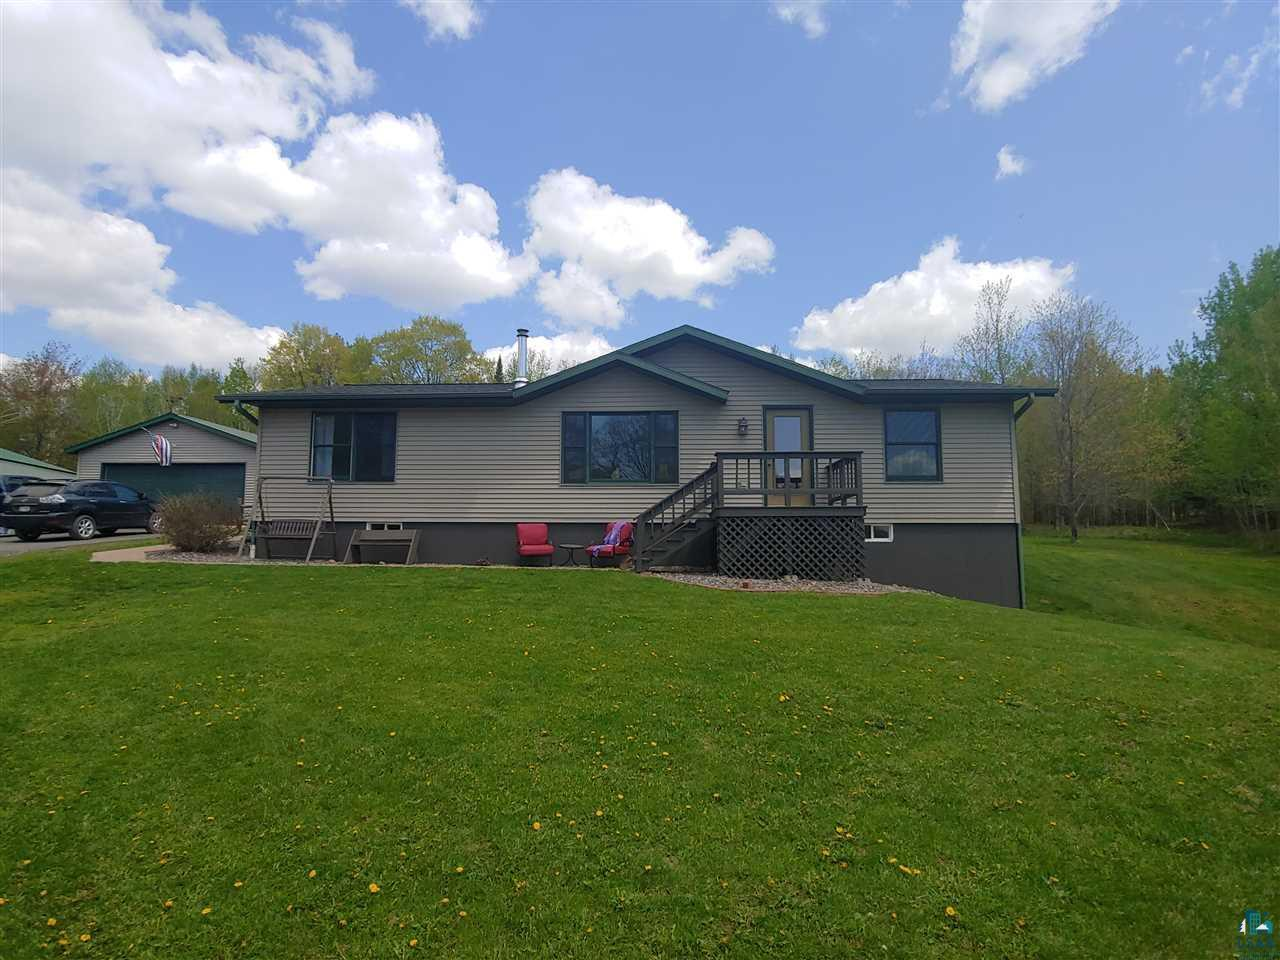 Beautiful turnkey three bedroom three bath home (Stratford 2002) on a dead end road all on 5 acres Quiet no traffic setting with an incredible view. Only 10 short minutes to Ashland or Washburn, Forced Air Heat and Cooling,  Cozy Wood Stove in Living Room and Electric Baseboard additionally in the basement, Open Concept, Updated vinyl flooring Finished basement with walk-out, Main floor and basement laundry. Heated garage and workshop(24x40)  Steel pole building(30x48) with a concrete floor and loft provides plenty of space to storage your equipment and toys.  Available renters for the pole building if you don't require all the space.  Come check out what this property has to offer.